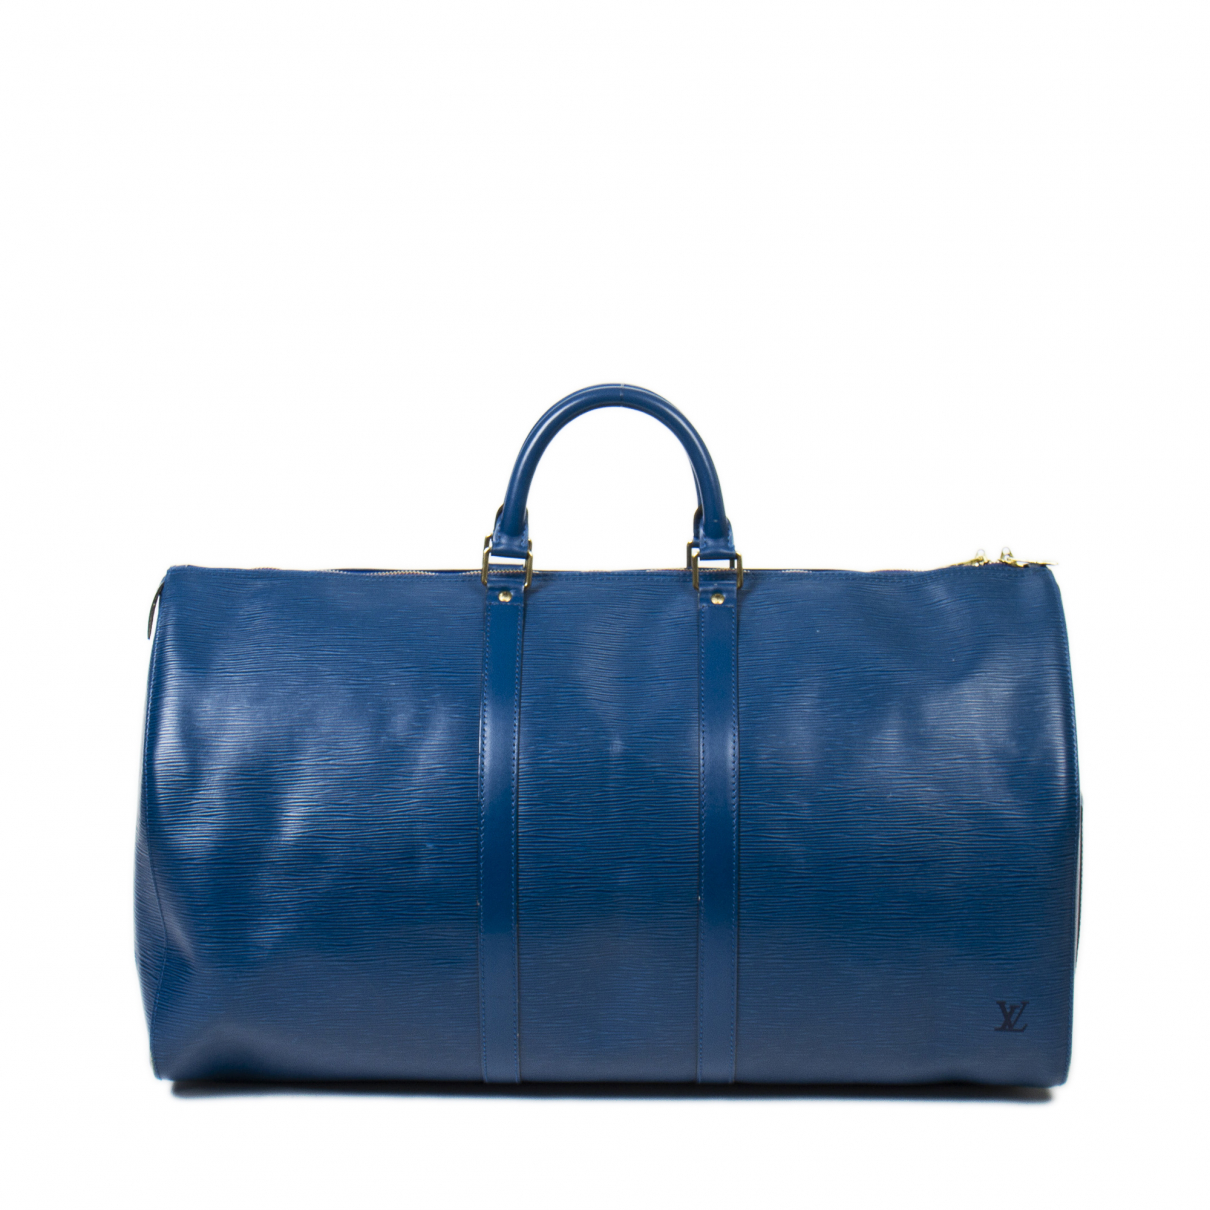 Louis Vuitton \N Handtasche in  Blau Leder